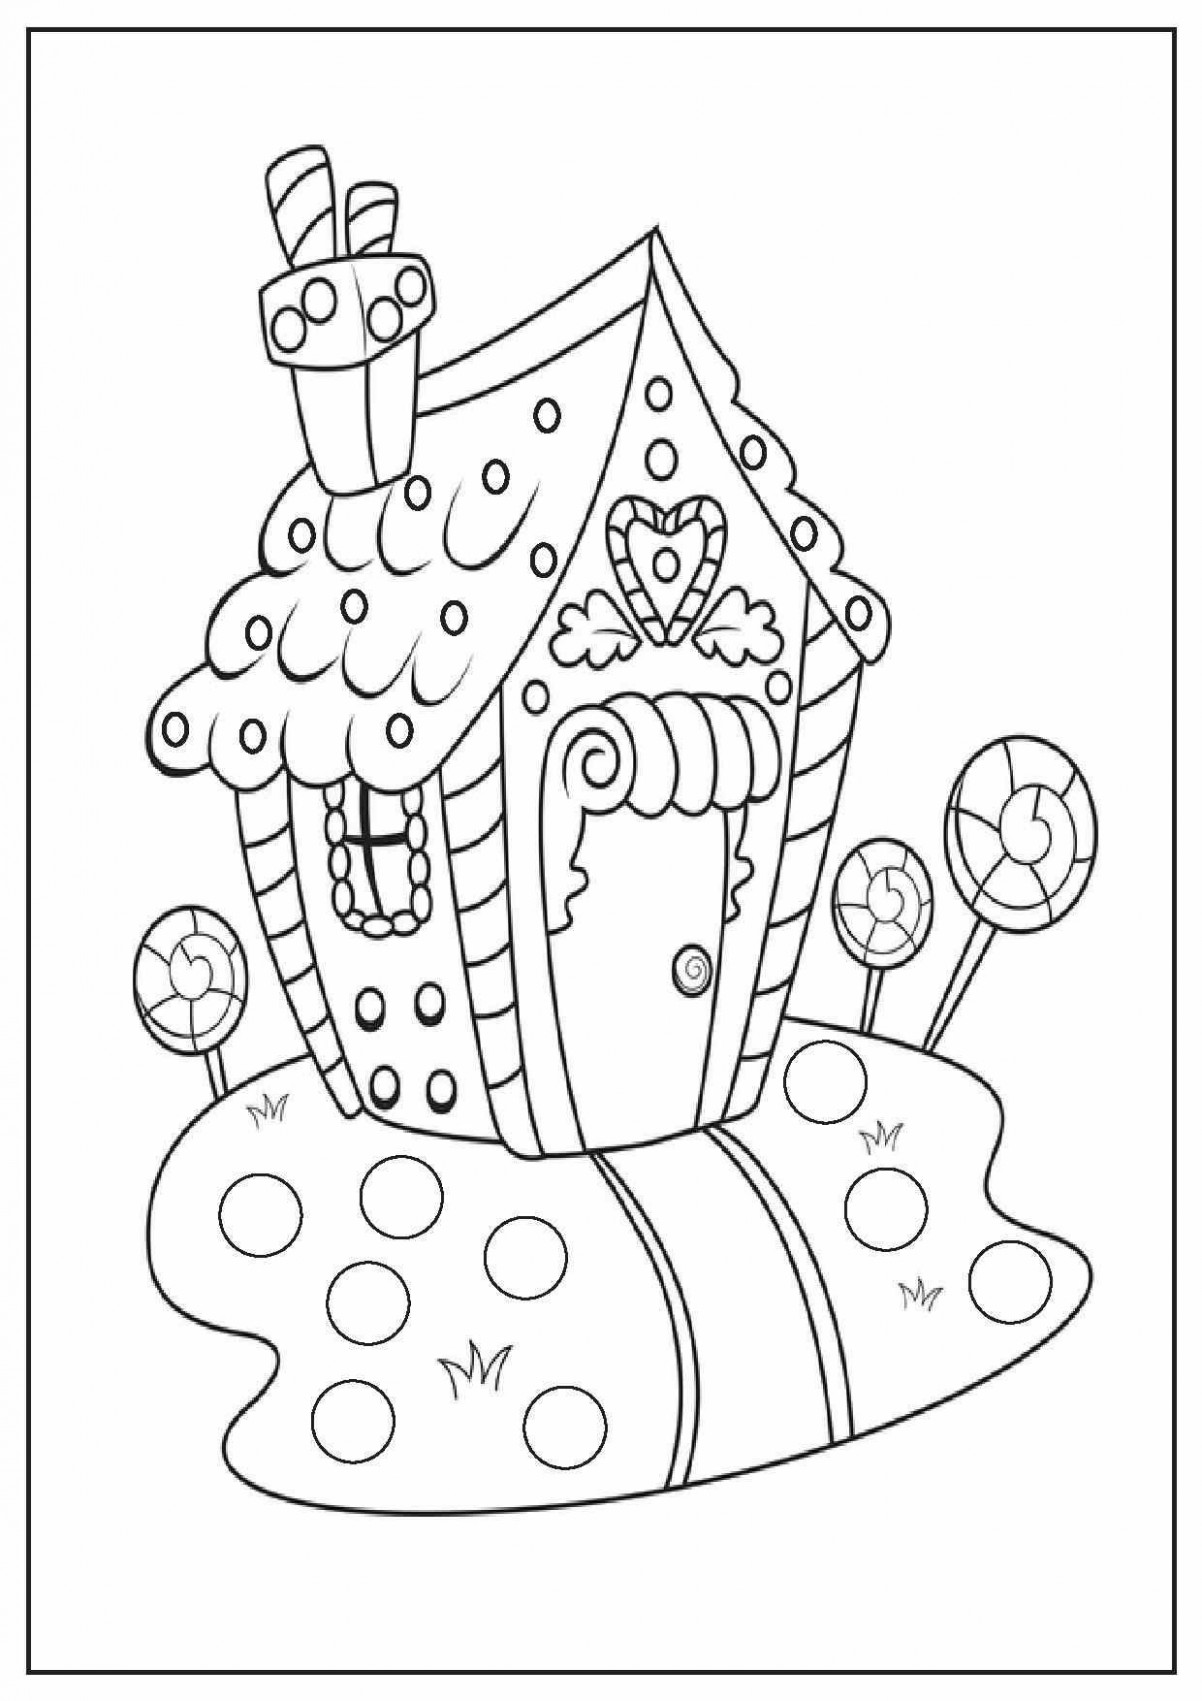 kindergarten coloring sheets | Only Coloring Pages | coloring ..